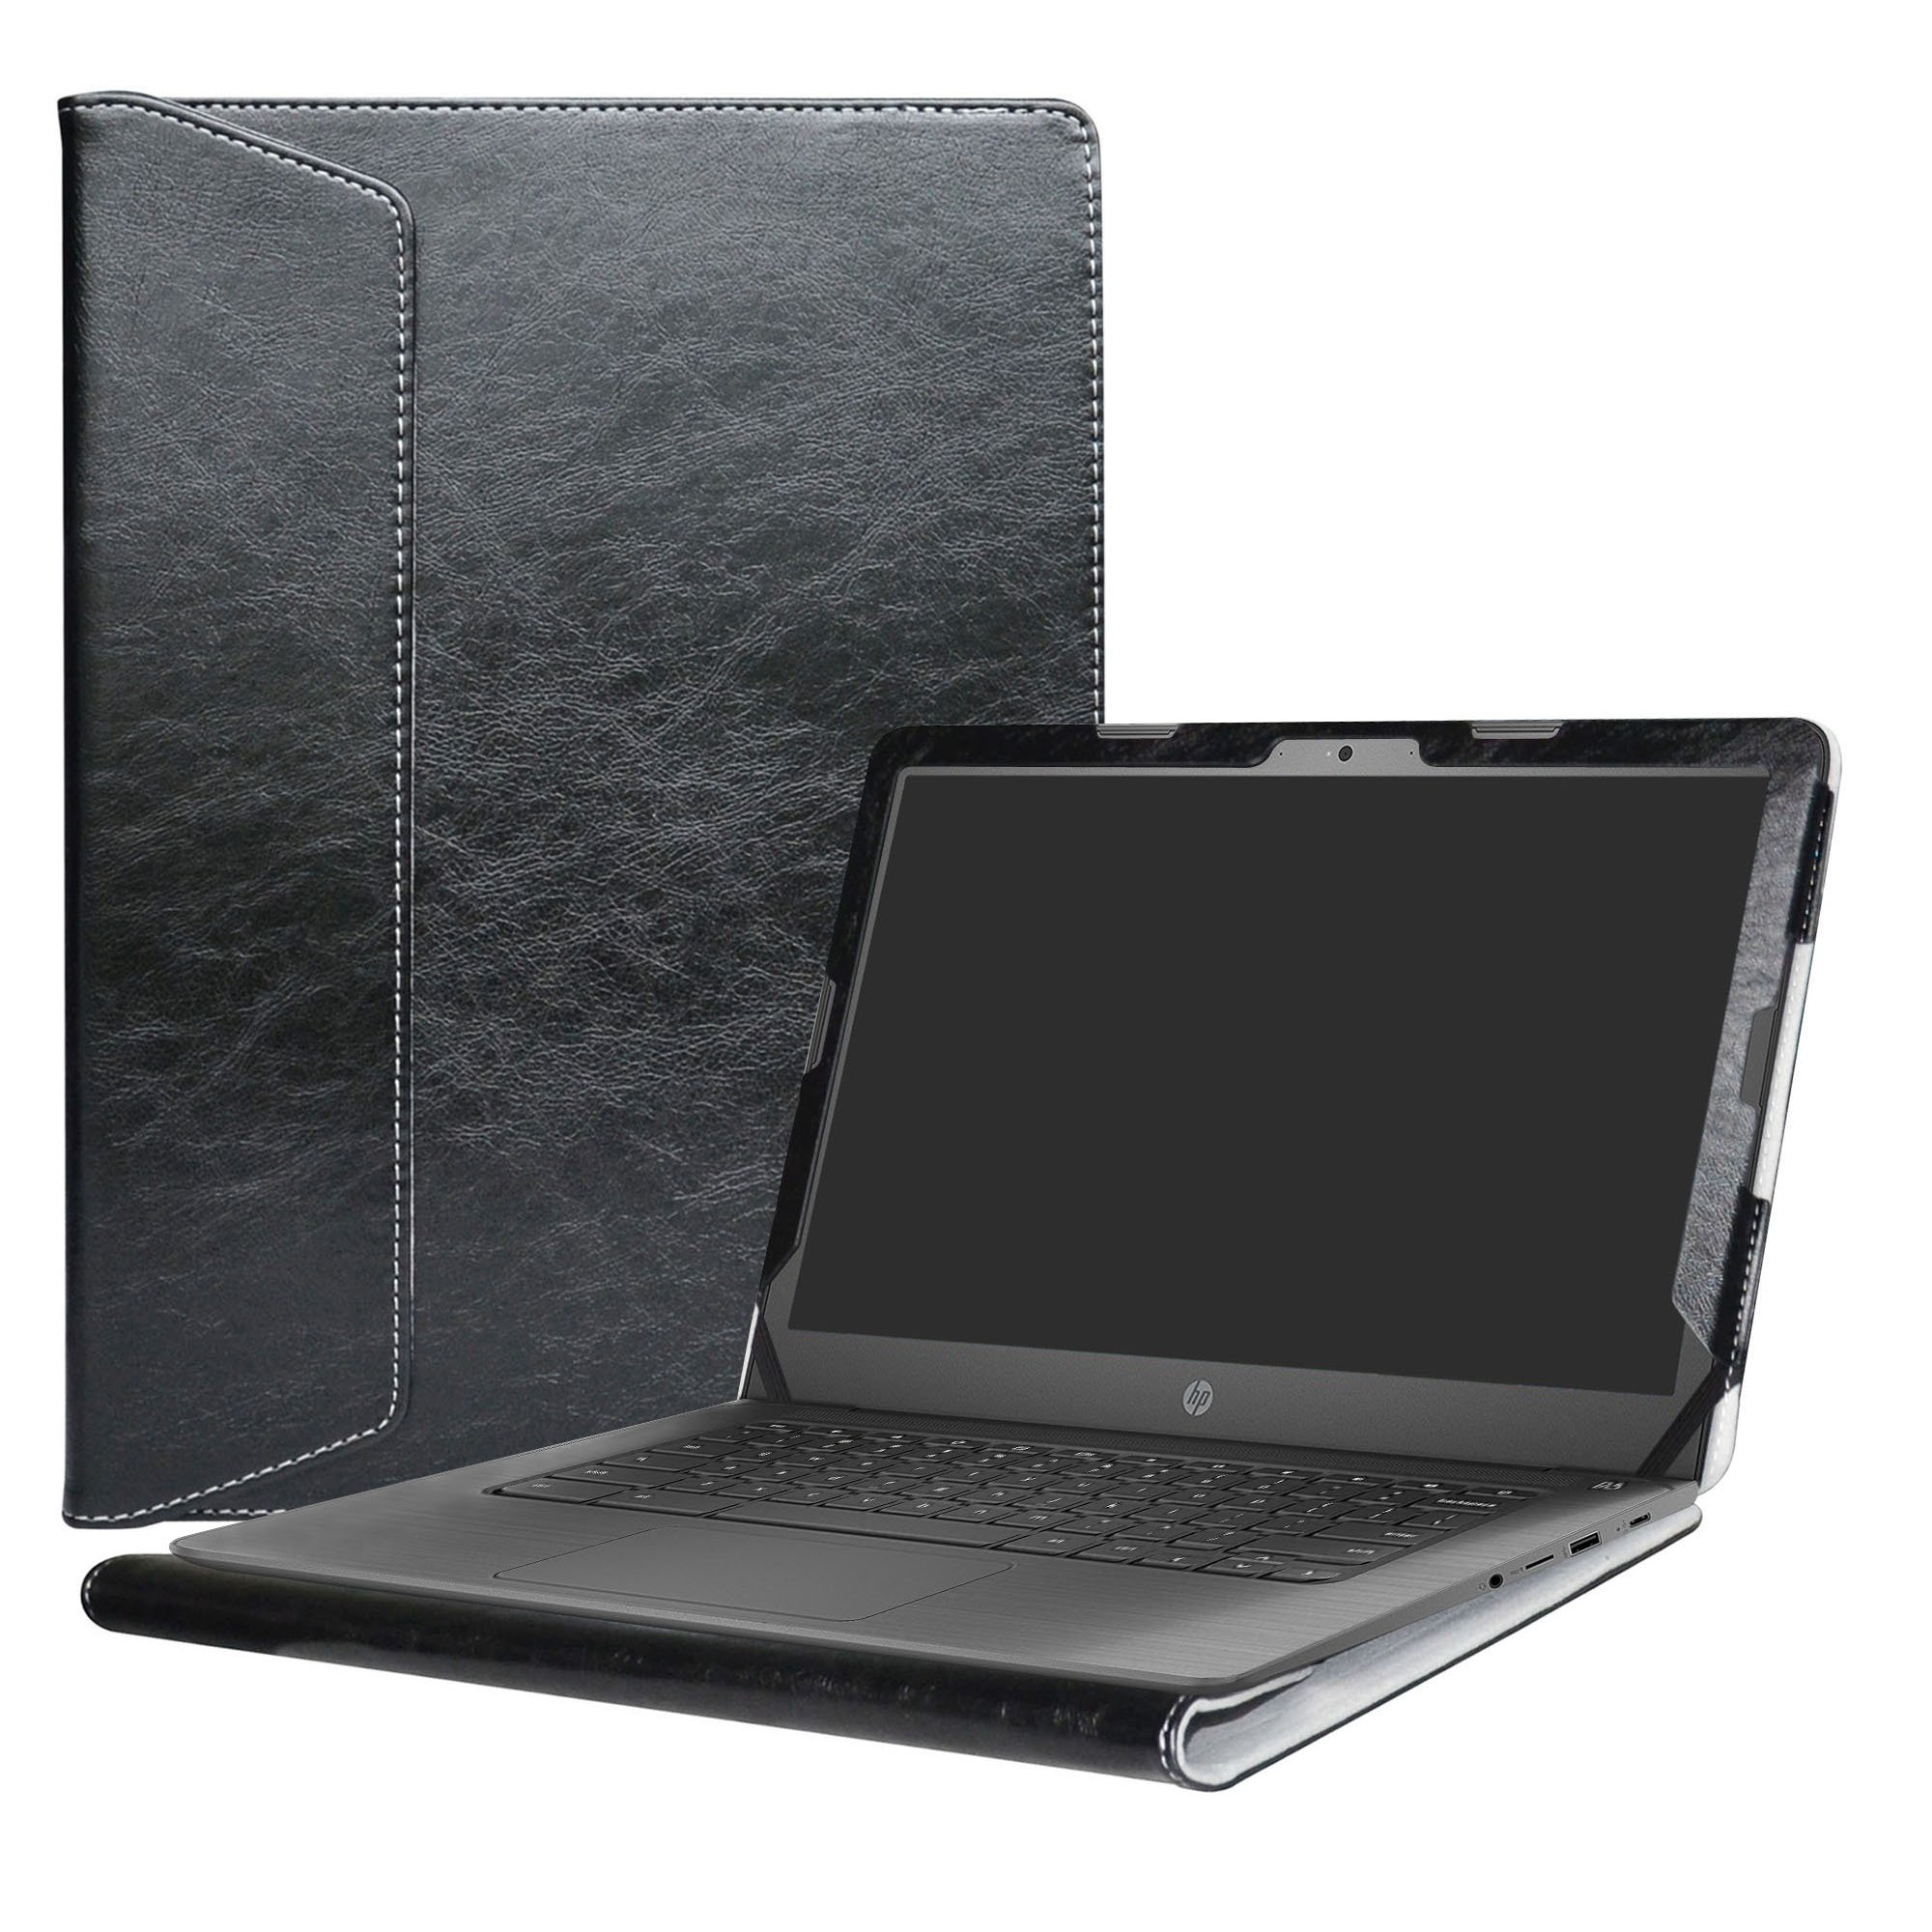 Alapmk Protective Case Cover For 14'' HP Notebook 14-bsXXX (Such as 14-bs153od)/14-bwXXX (Such as 14-bw010nr)/HP 240 G6/HP 245 G6/HP 246 G6 Laptop(Not fit 14-anXXX 14-amXXX 14-cmXXX Series),Black